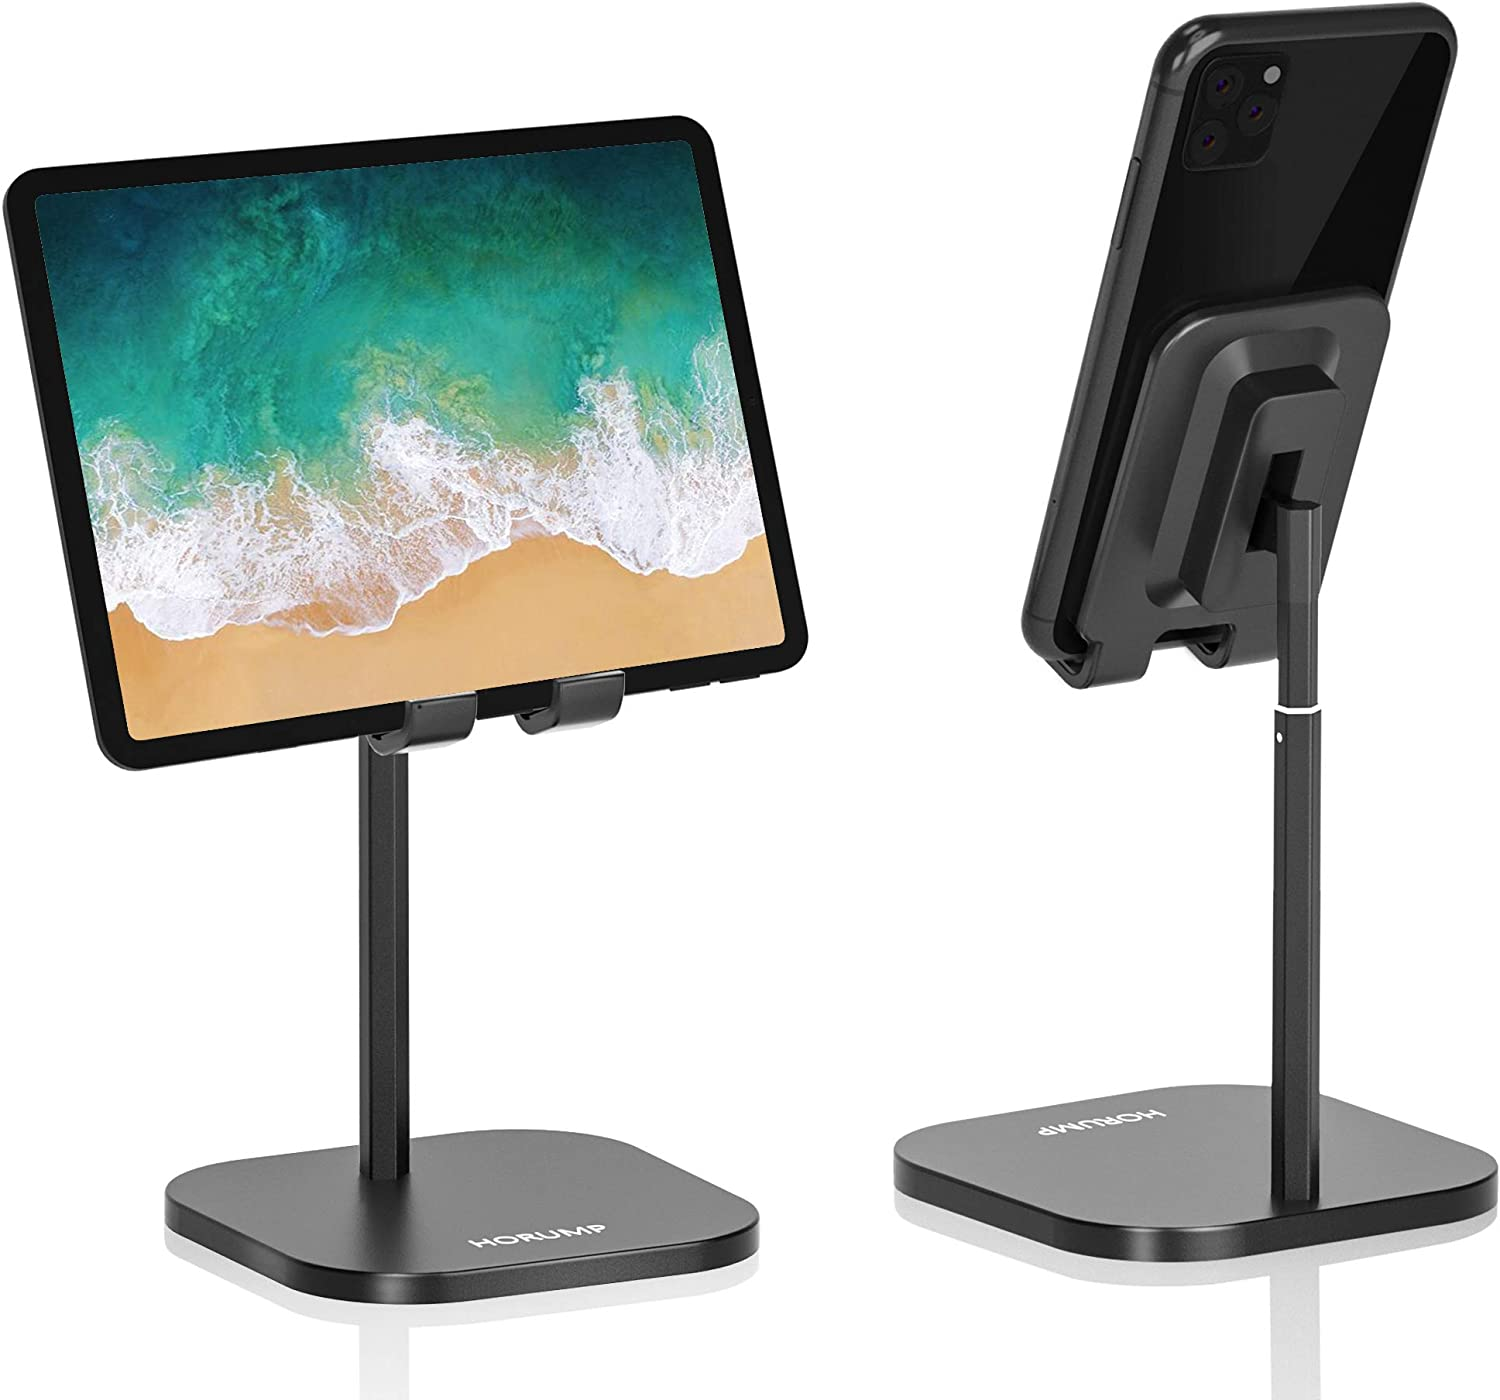 Cell Phone Stand for Desk, HORUMP Angle Height Adjustable Phone Holder Stand for Desk, Compatible with All Mobile Phones/Tablet